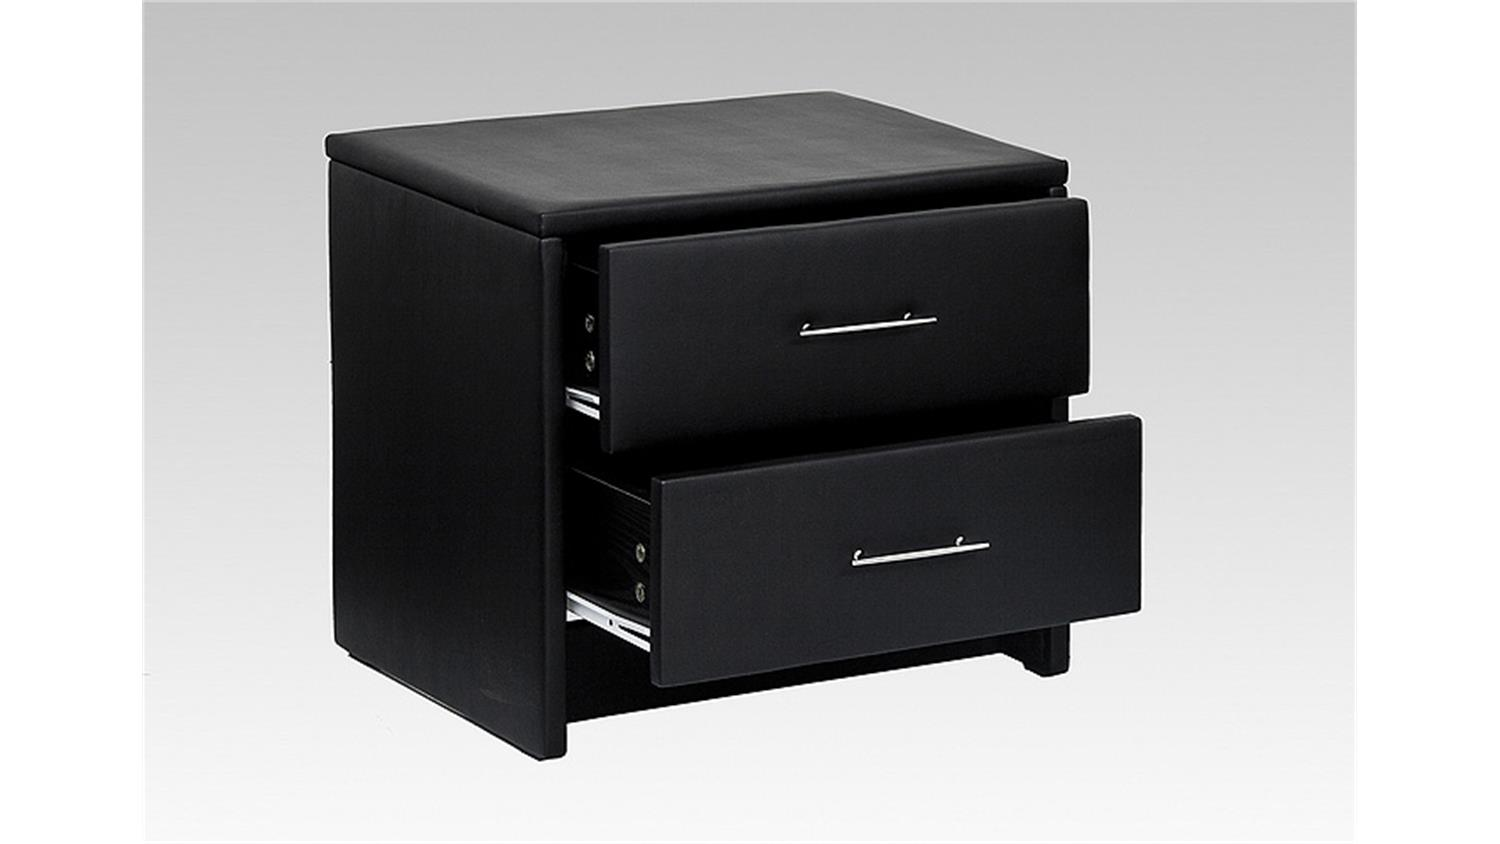 nachtkonsole helsinki nachtkommode kommode in schwarz 45 cm. Black Bedroom Furniture Sets. Home Design Ideas